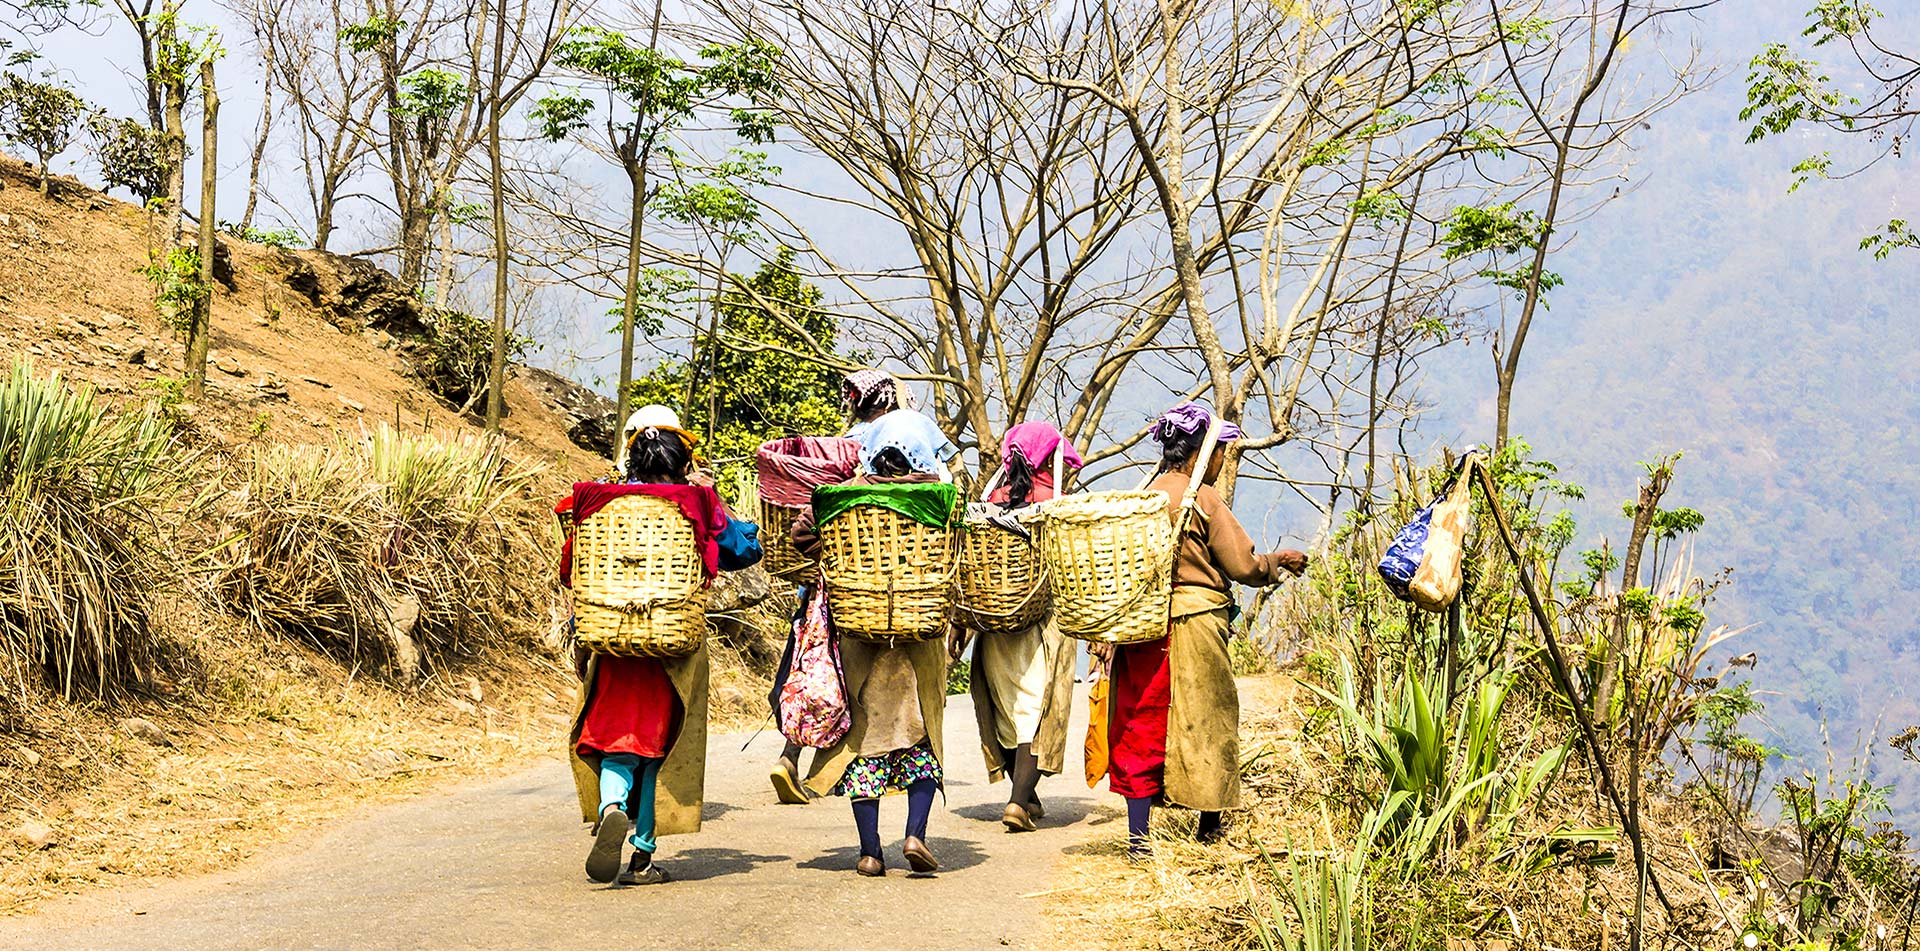 Asia India Darjeeling local women walking on trail with babies on their backs - luxury vacation destinations